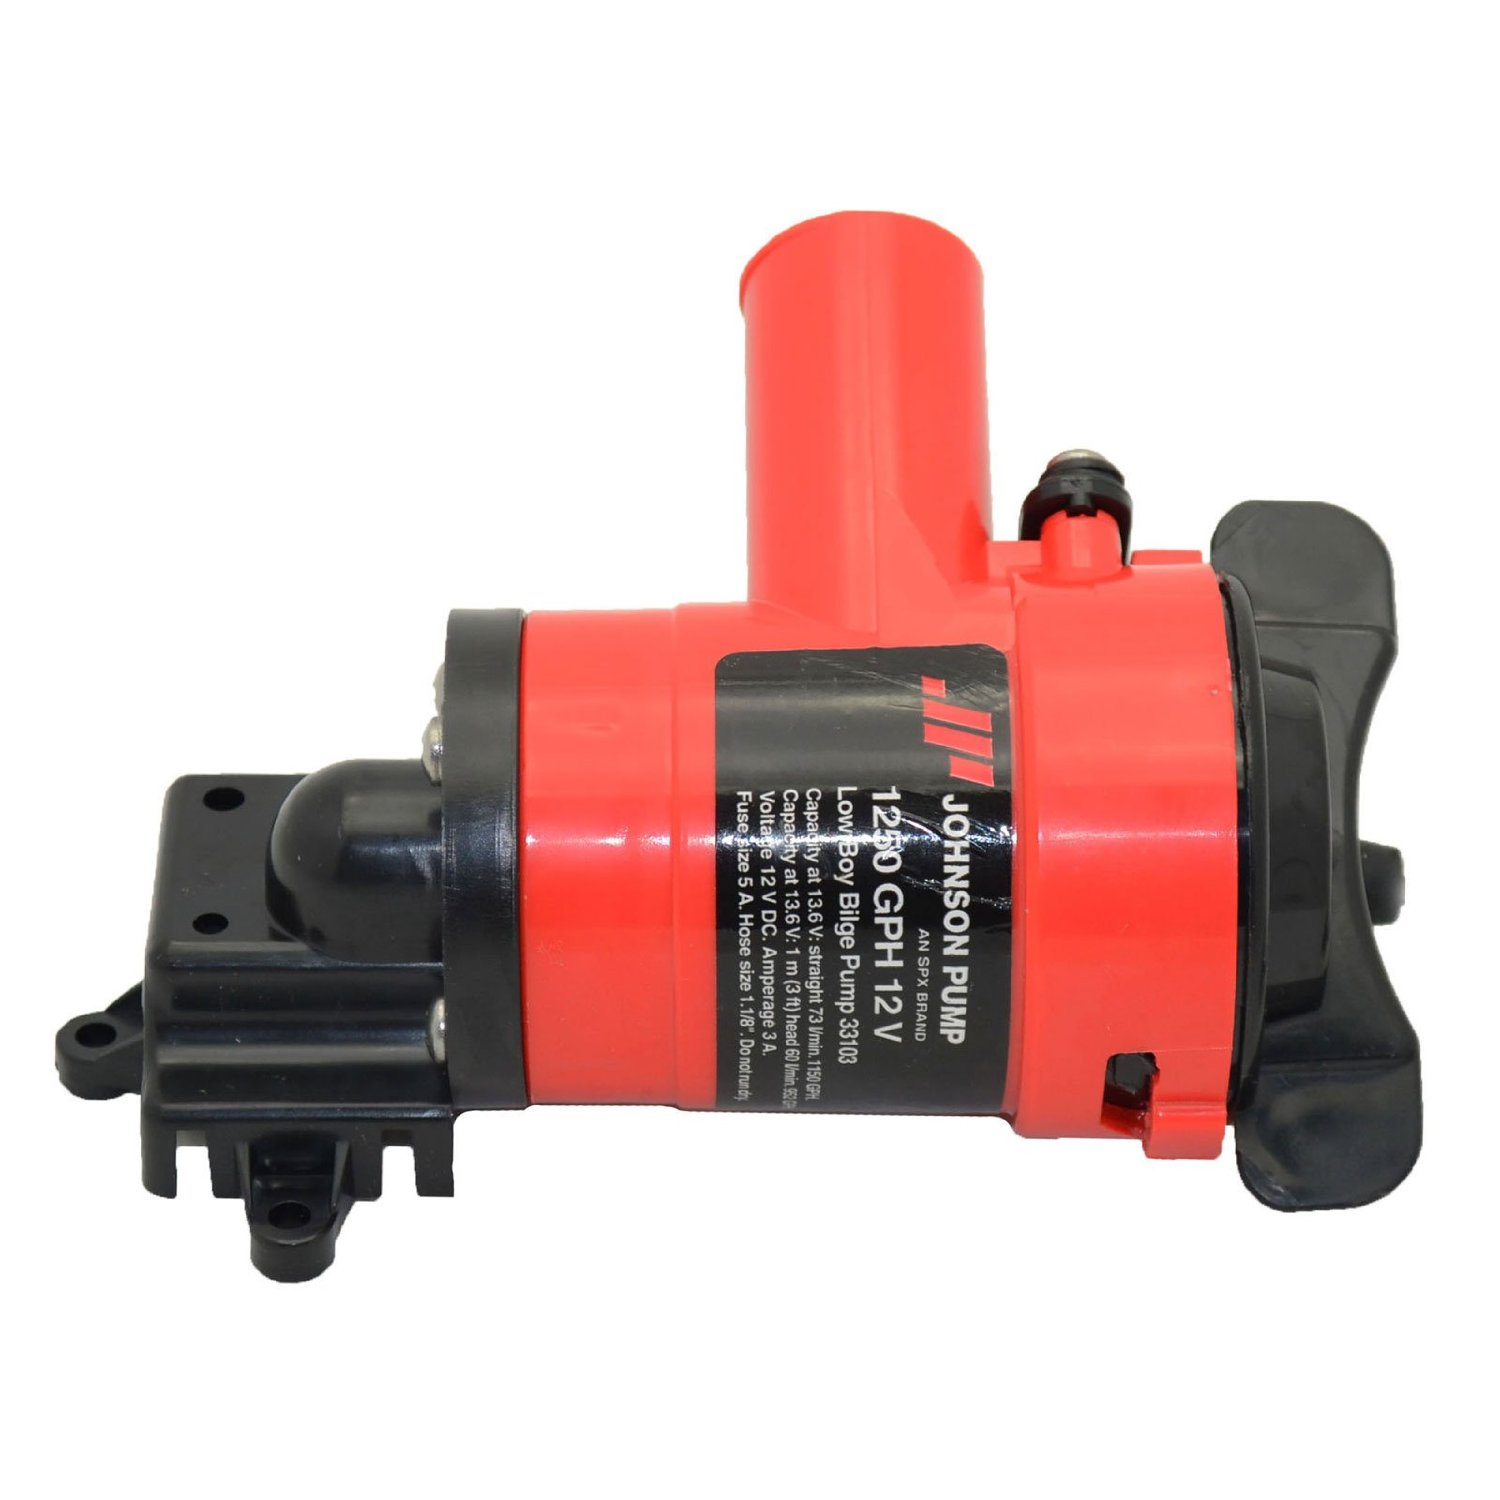 Cheap bilge pumps find bilge pumps deals on line at alibaba get quotations johnson pumps 33103 1250 gph low boy 12v bilge pump publicscrutiny Image collections